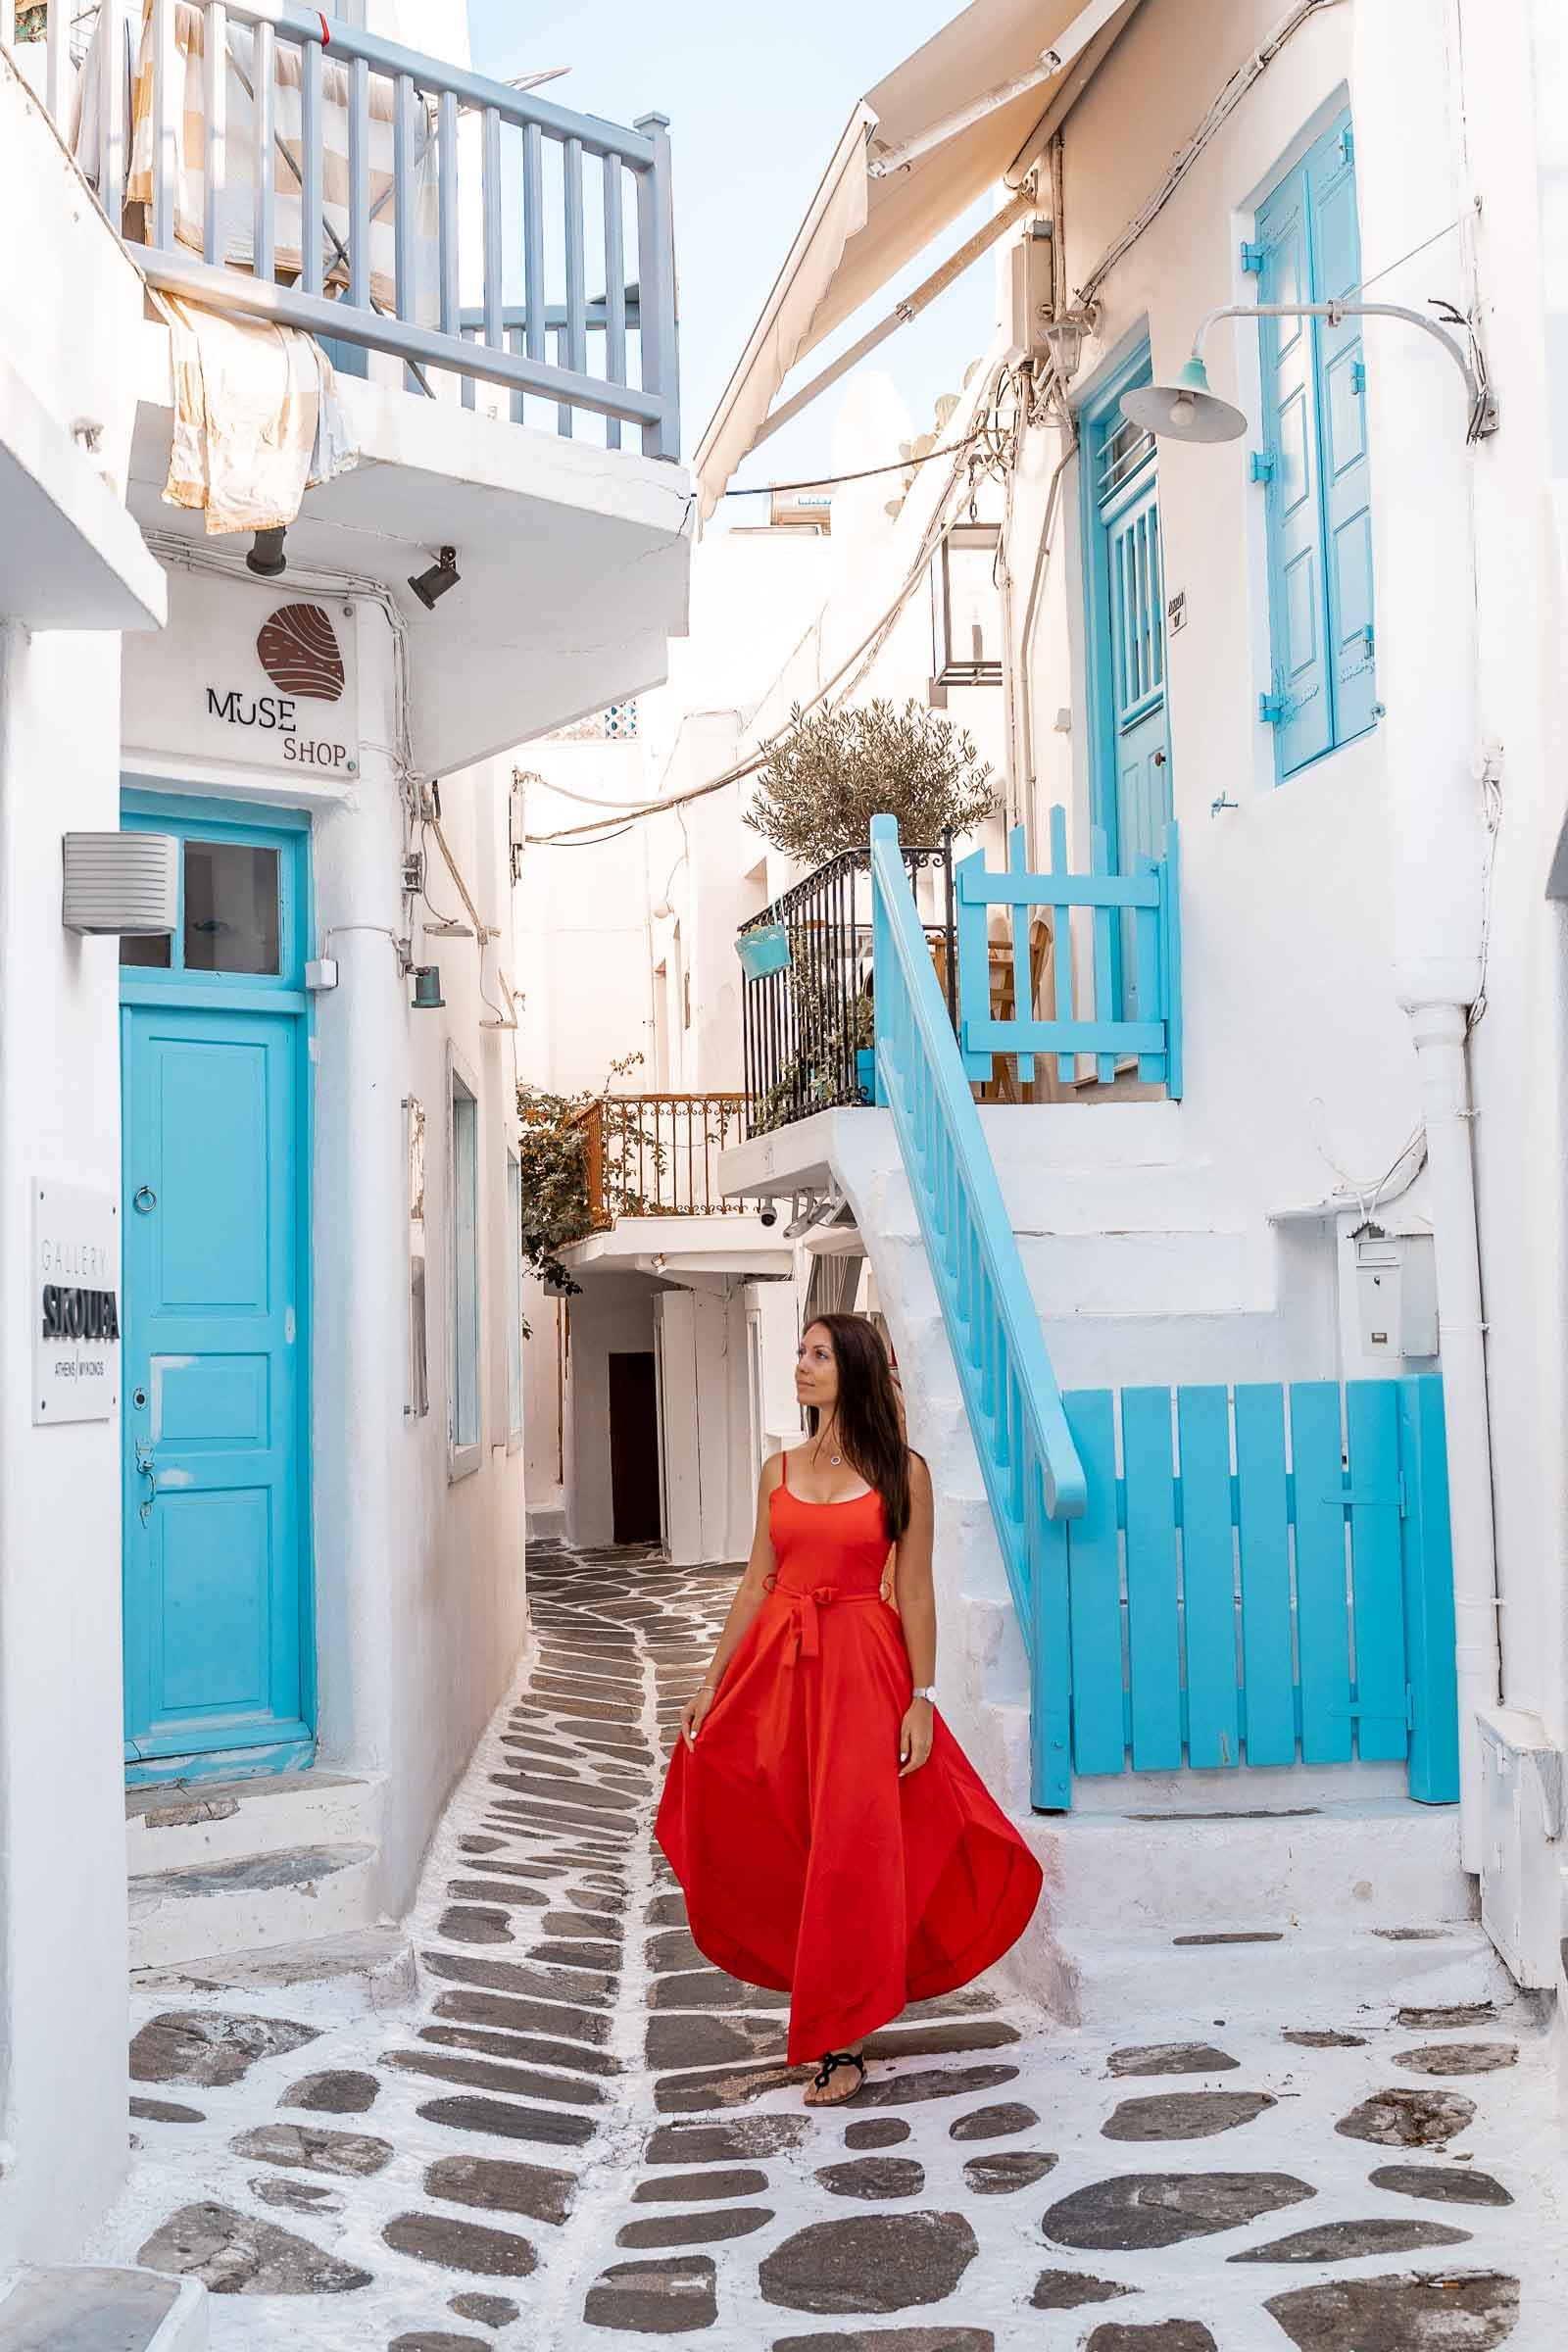 Girl in a red dress standing in the middle of a blue street in Mykonos